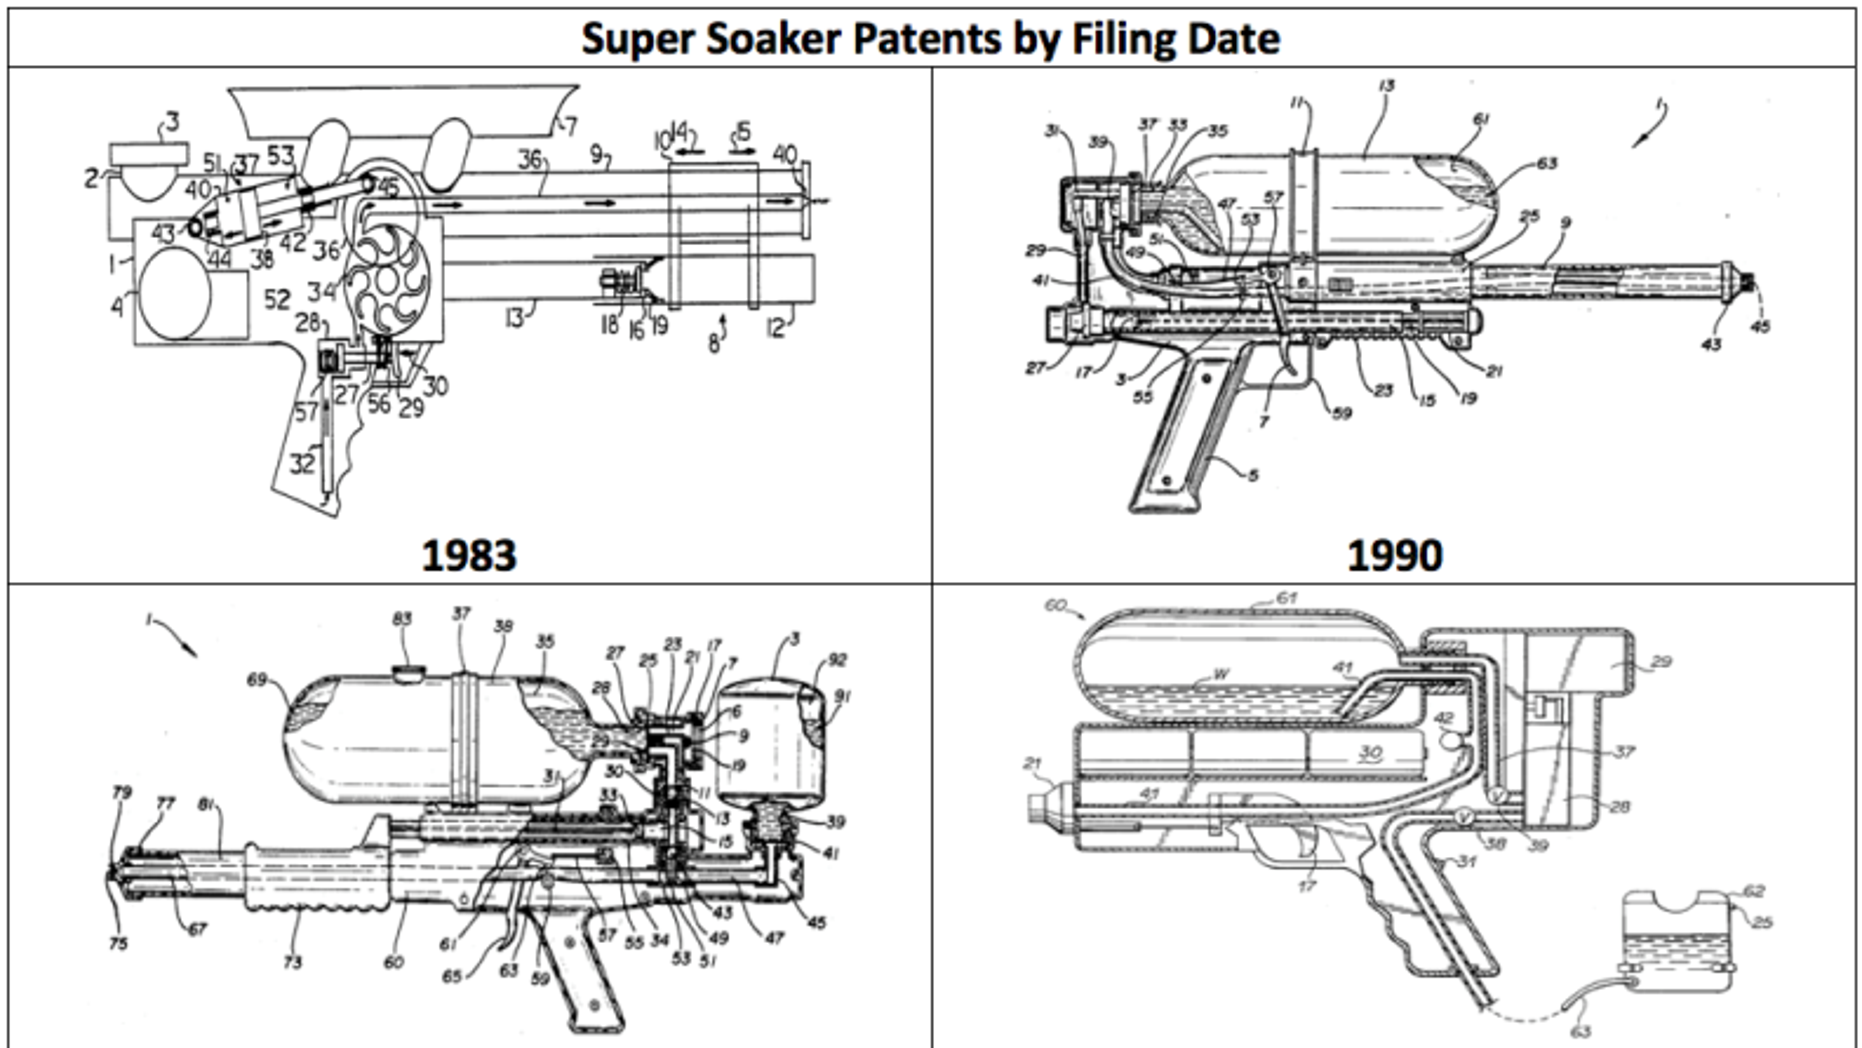 Super Soaker Patents by Filing Date